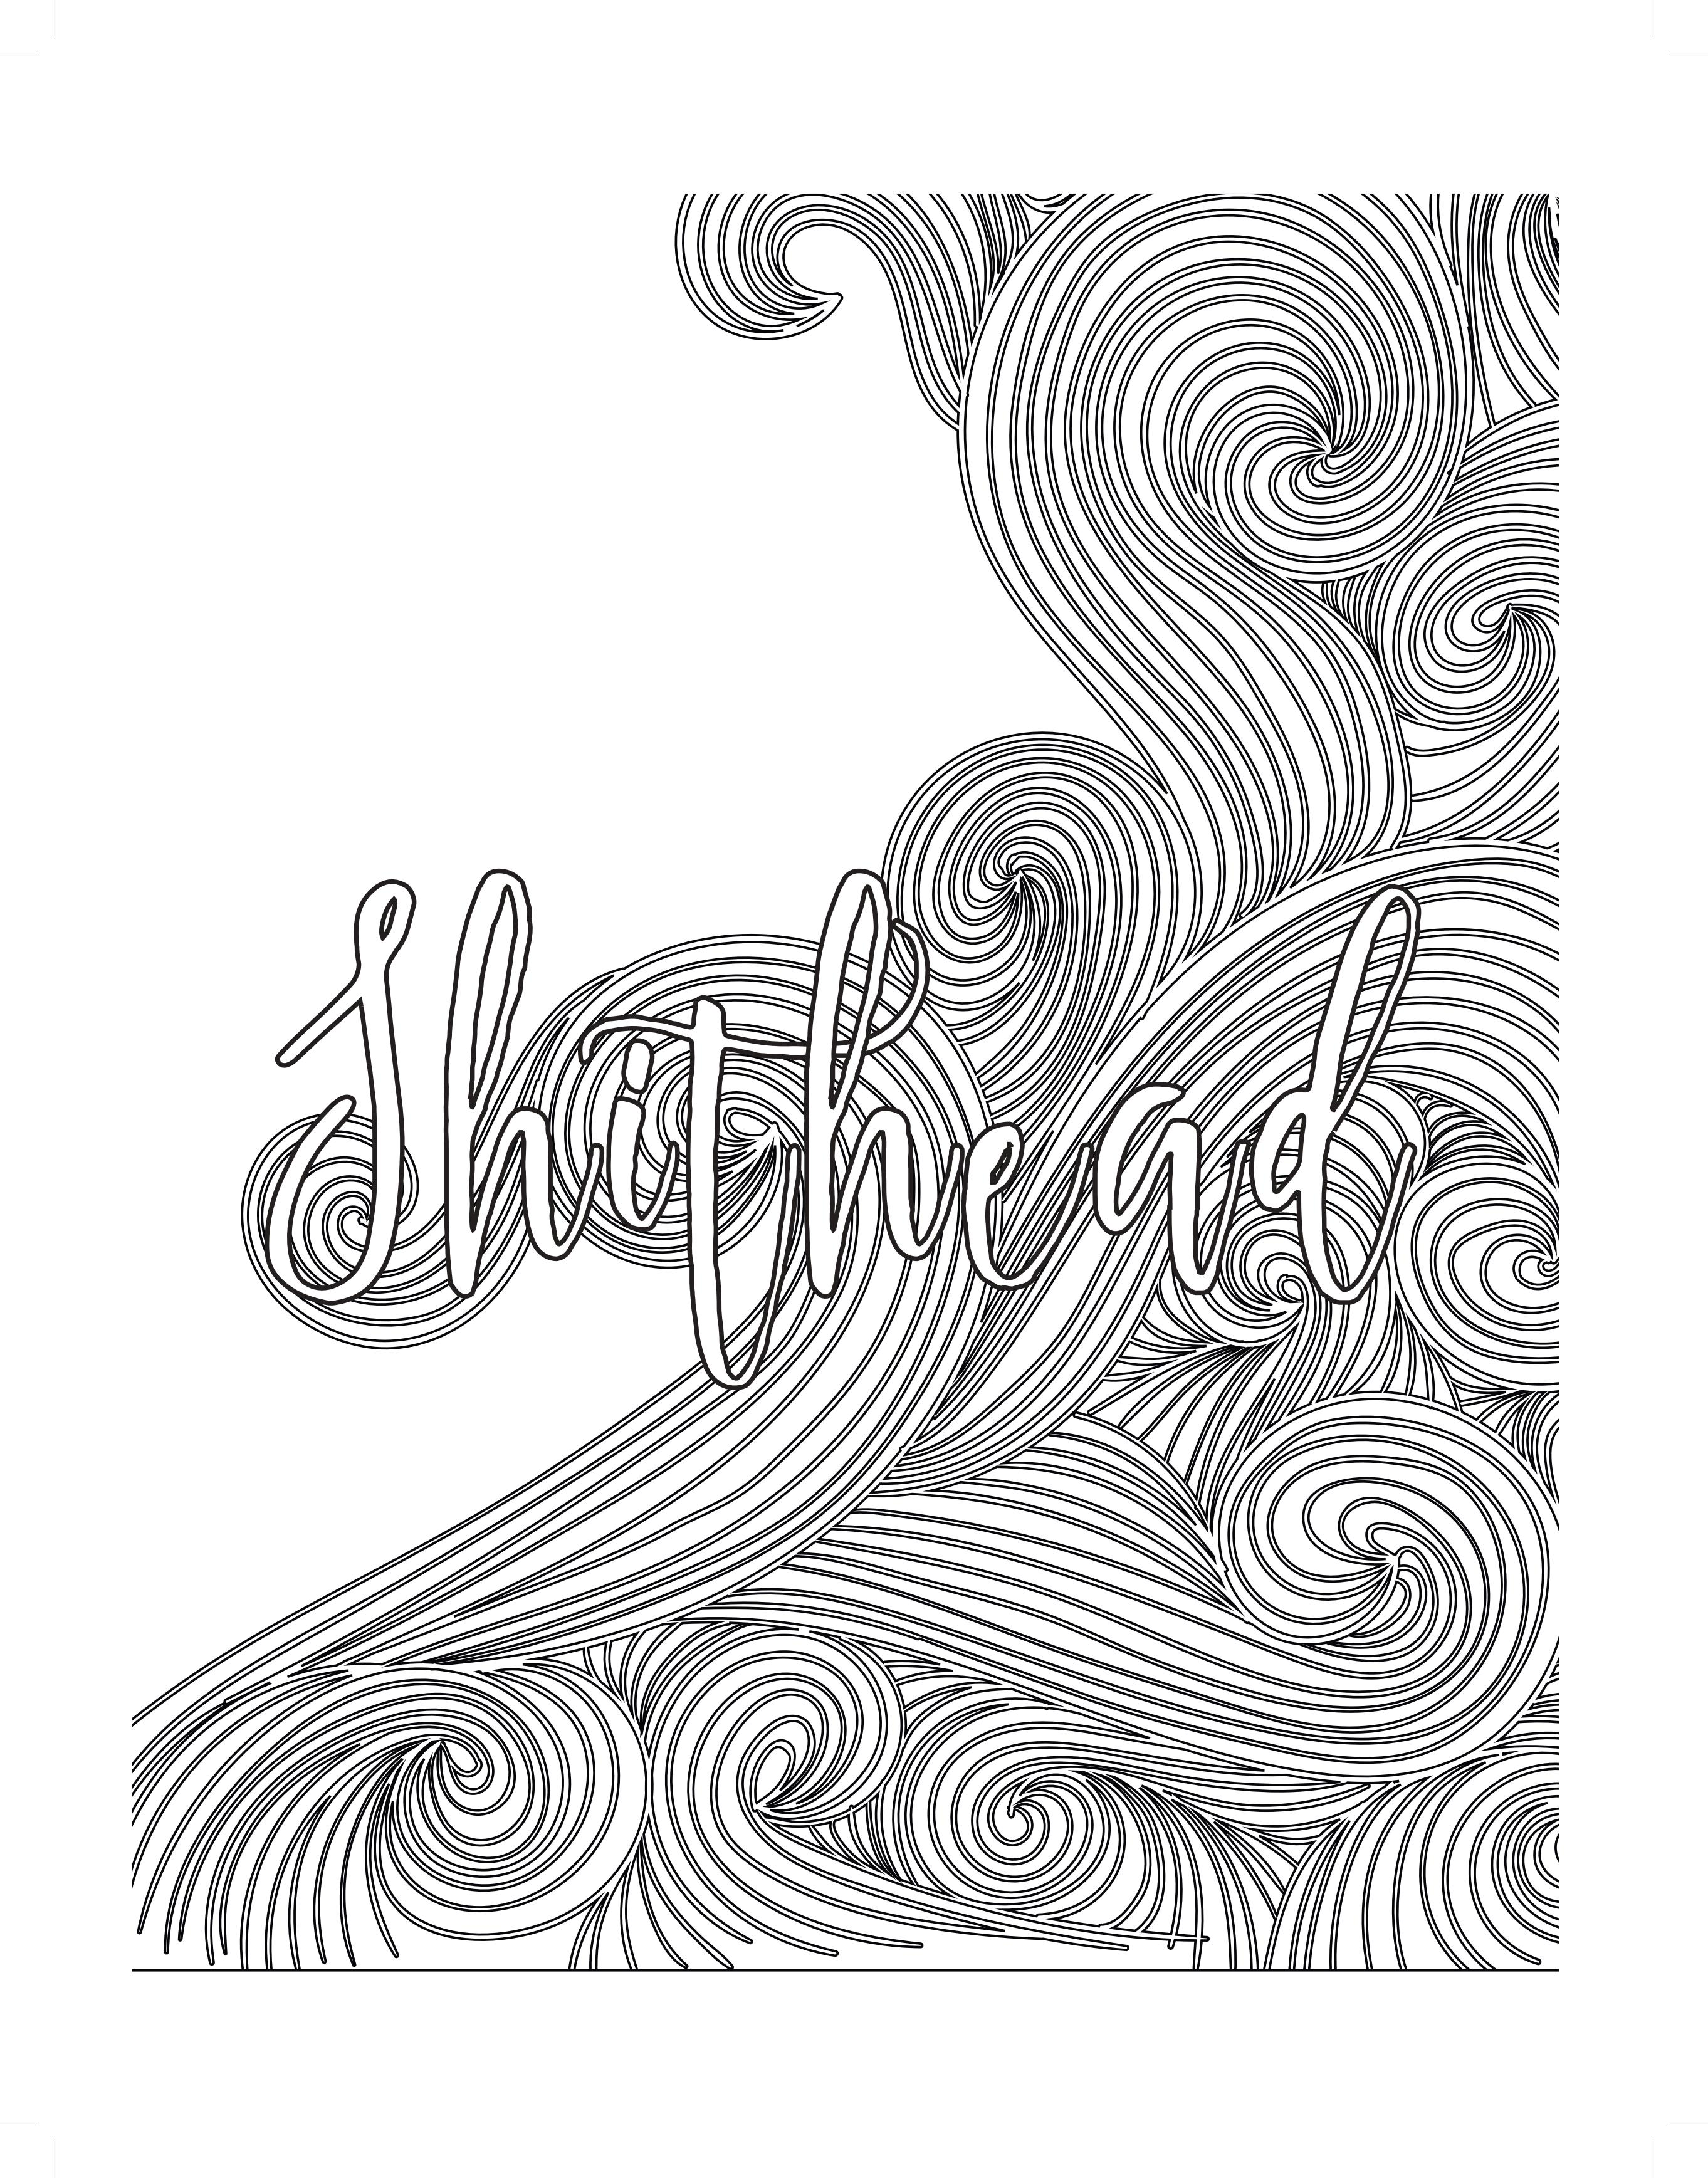 Printable Curse Word Coloring Pages At Getdrawings Com Free For